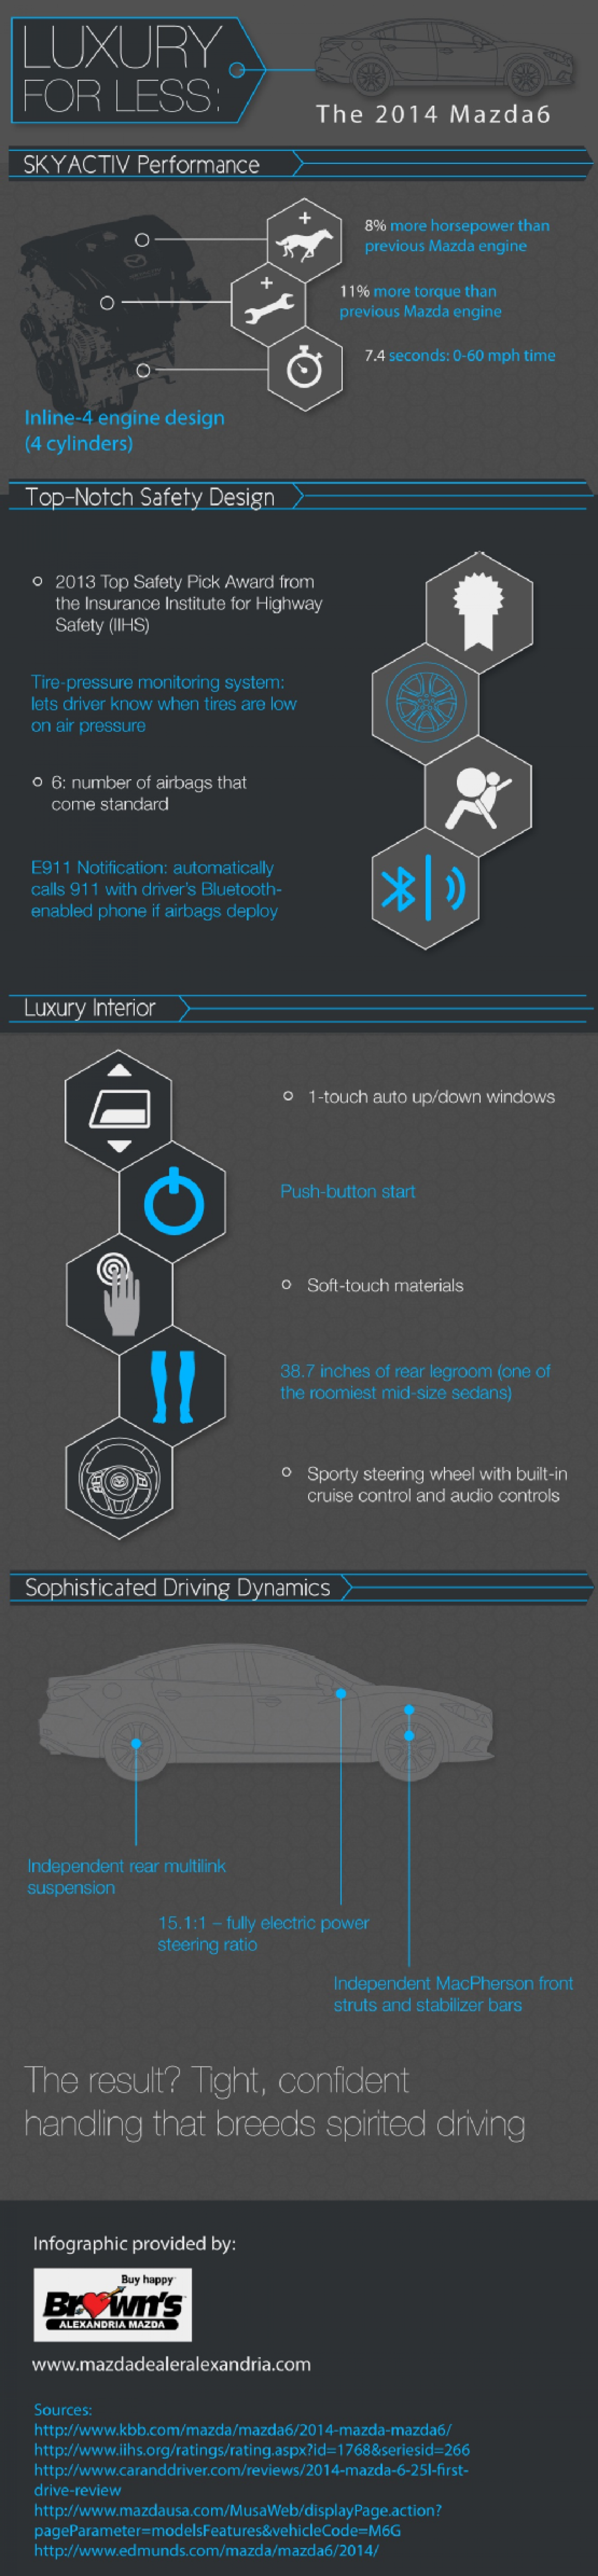 Luxury for Less: 2014 Mazda6 Infographic